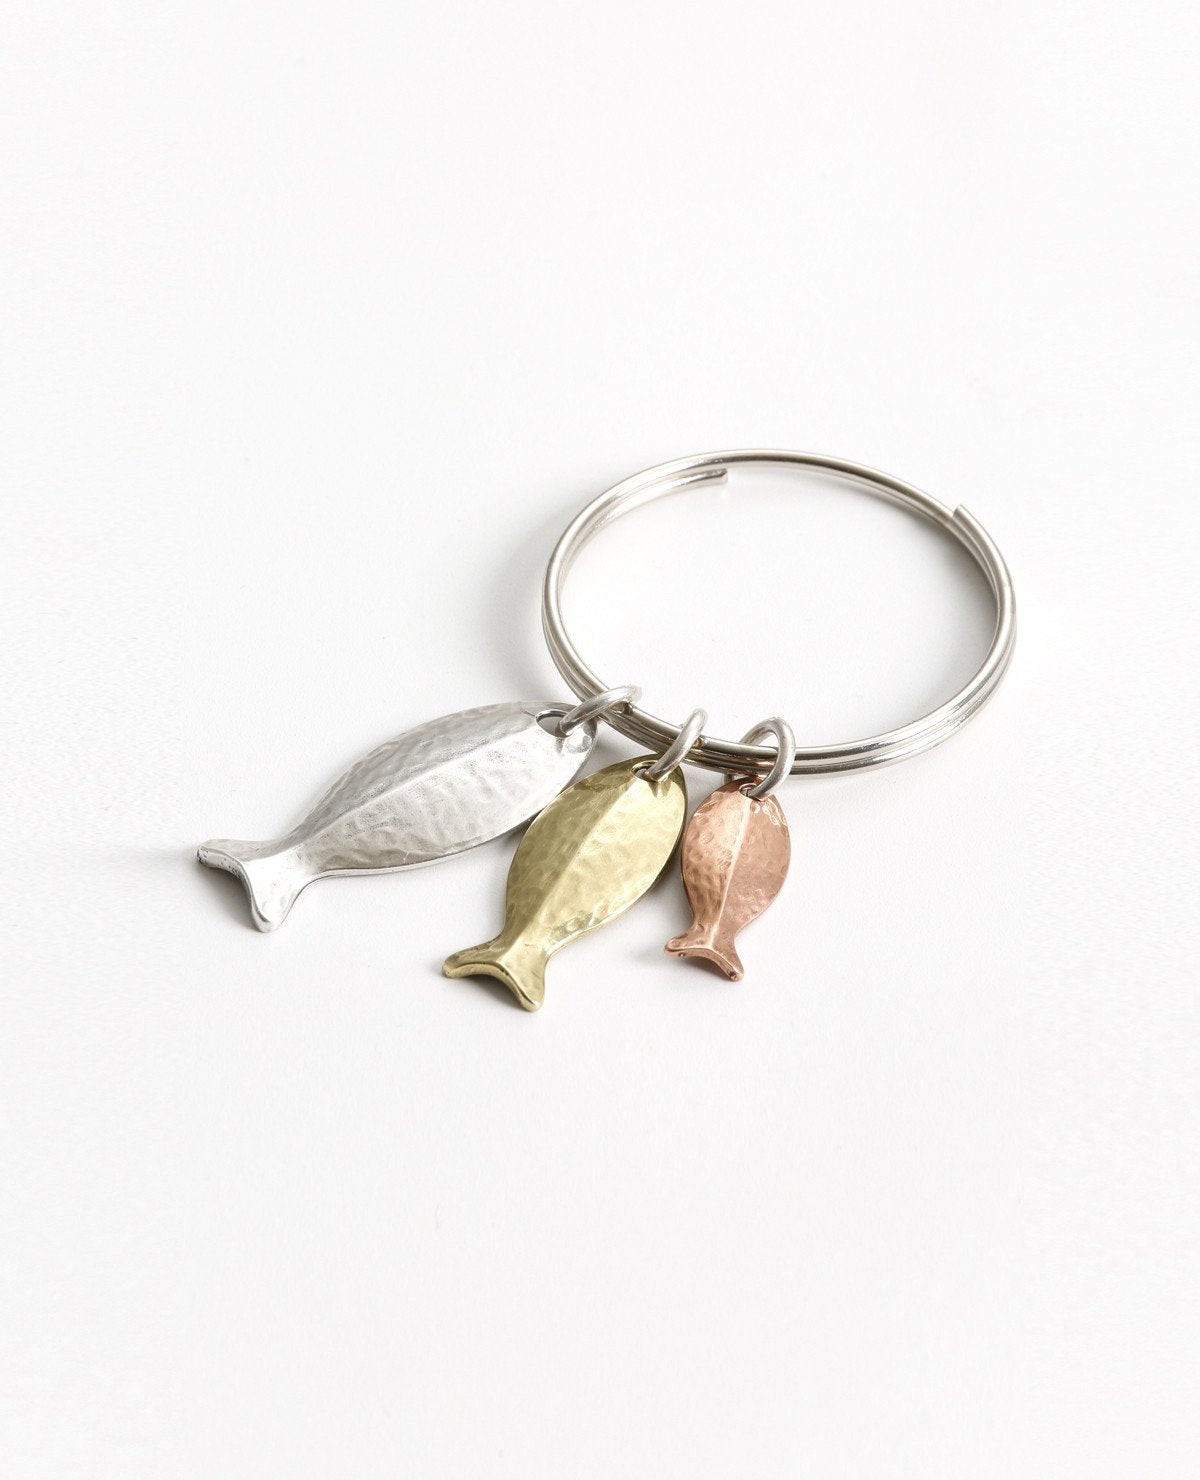 A stunning keychain that comes with a smile and a triple blessing. Designed in the shape of a ring upon which hang three cute fish in different sizes, coated in three different metals and colors: silver, gold and copper. The fish symbolizes fertility, abundance and luck (in Hebrew fish spelled backwards is luck). A fun gift full of beauty, motion and lots of good luck! Grant it with love to anyone important which you hold dear, and to anyone who you always wish luck, abundance and blessing. The keychain is